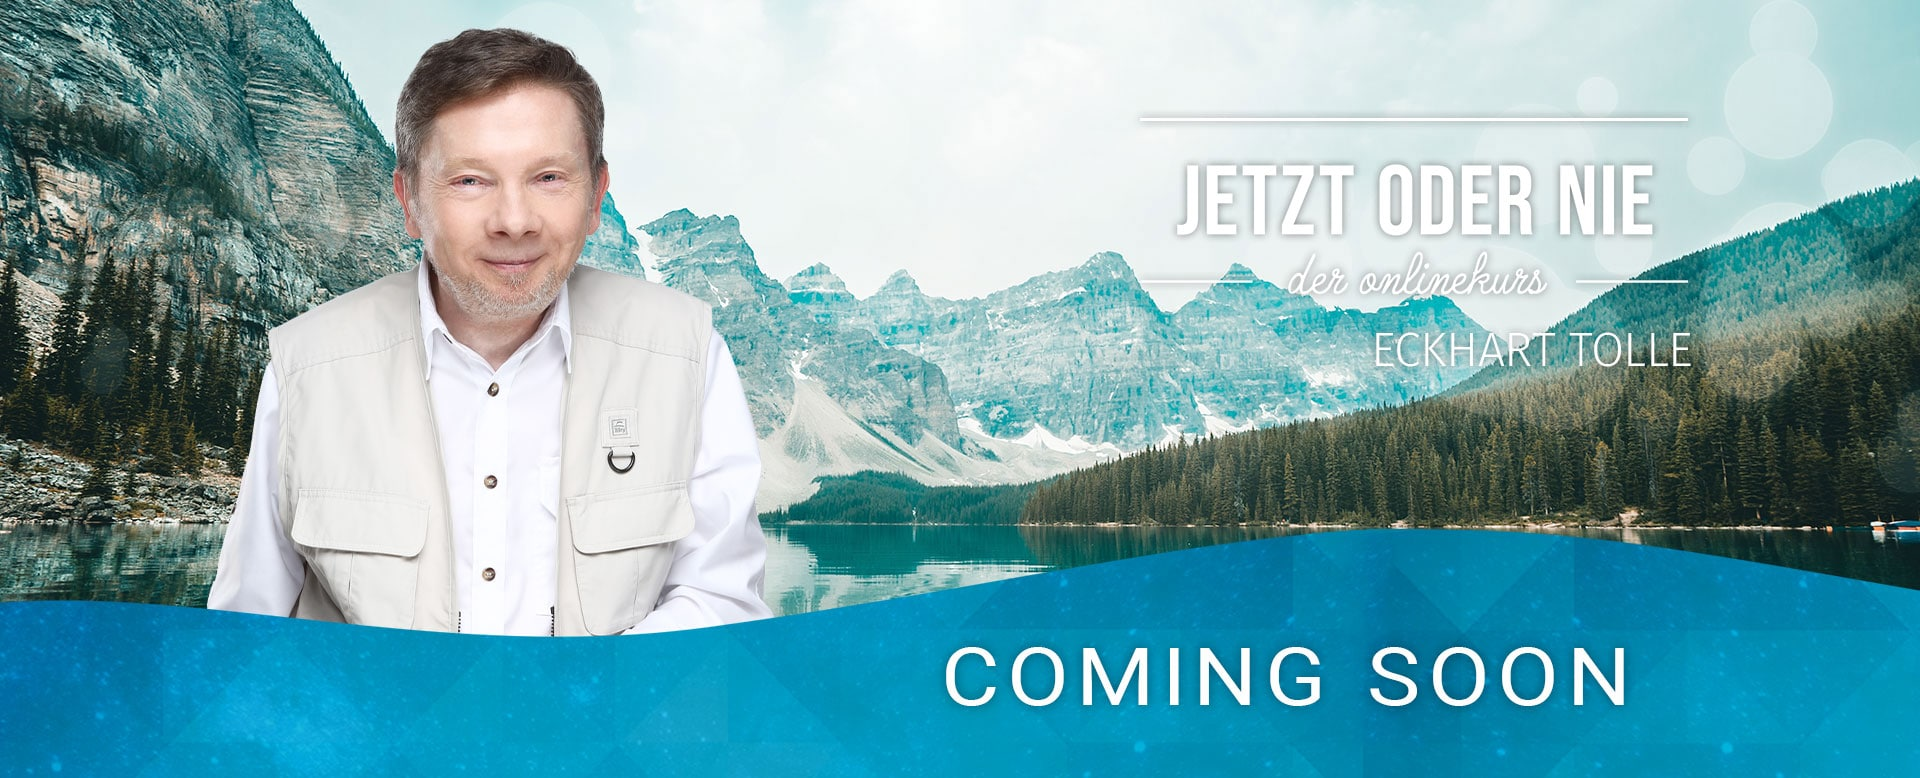 psionline-comingsoon-tolle-eckhart